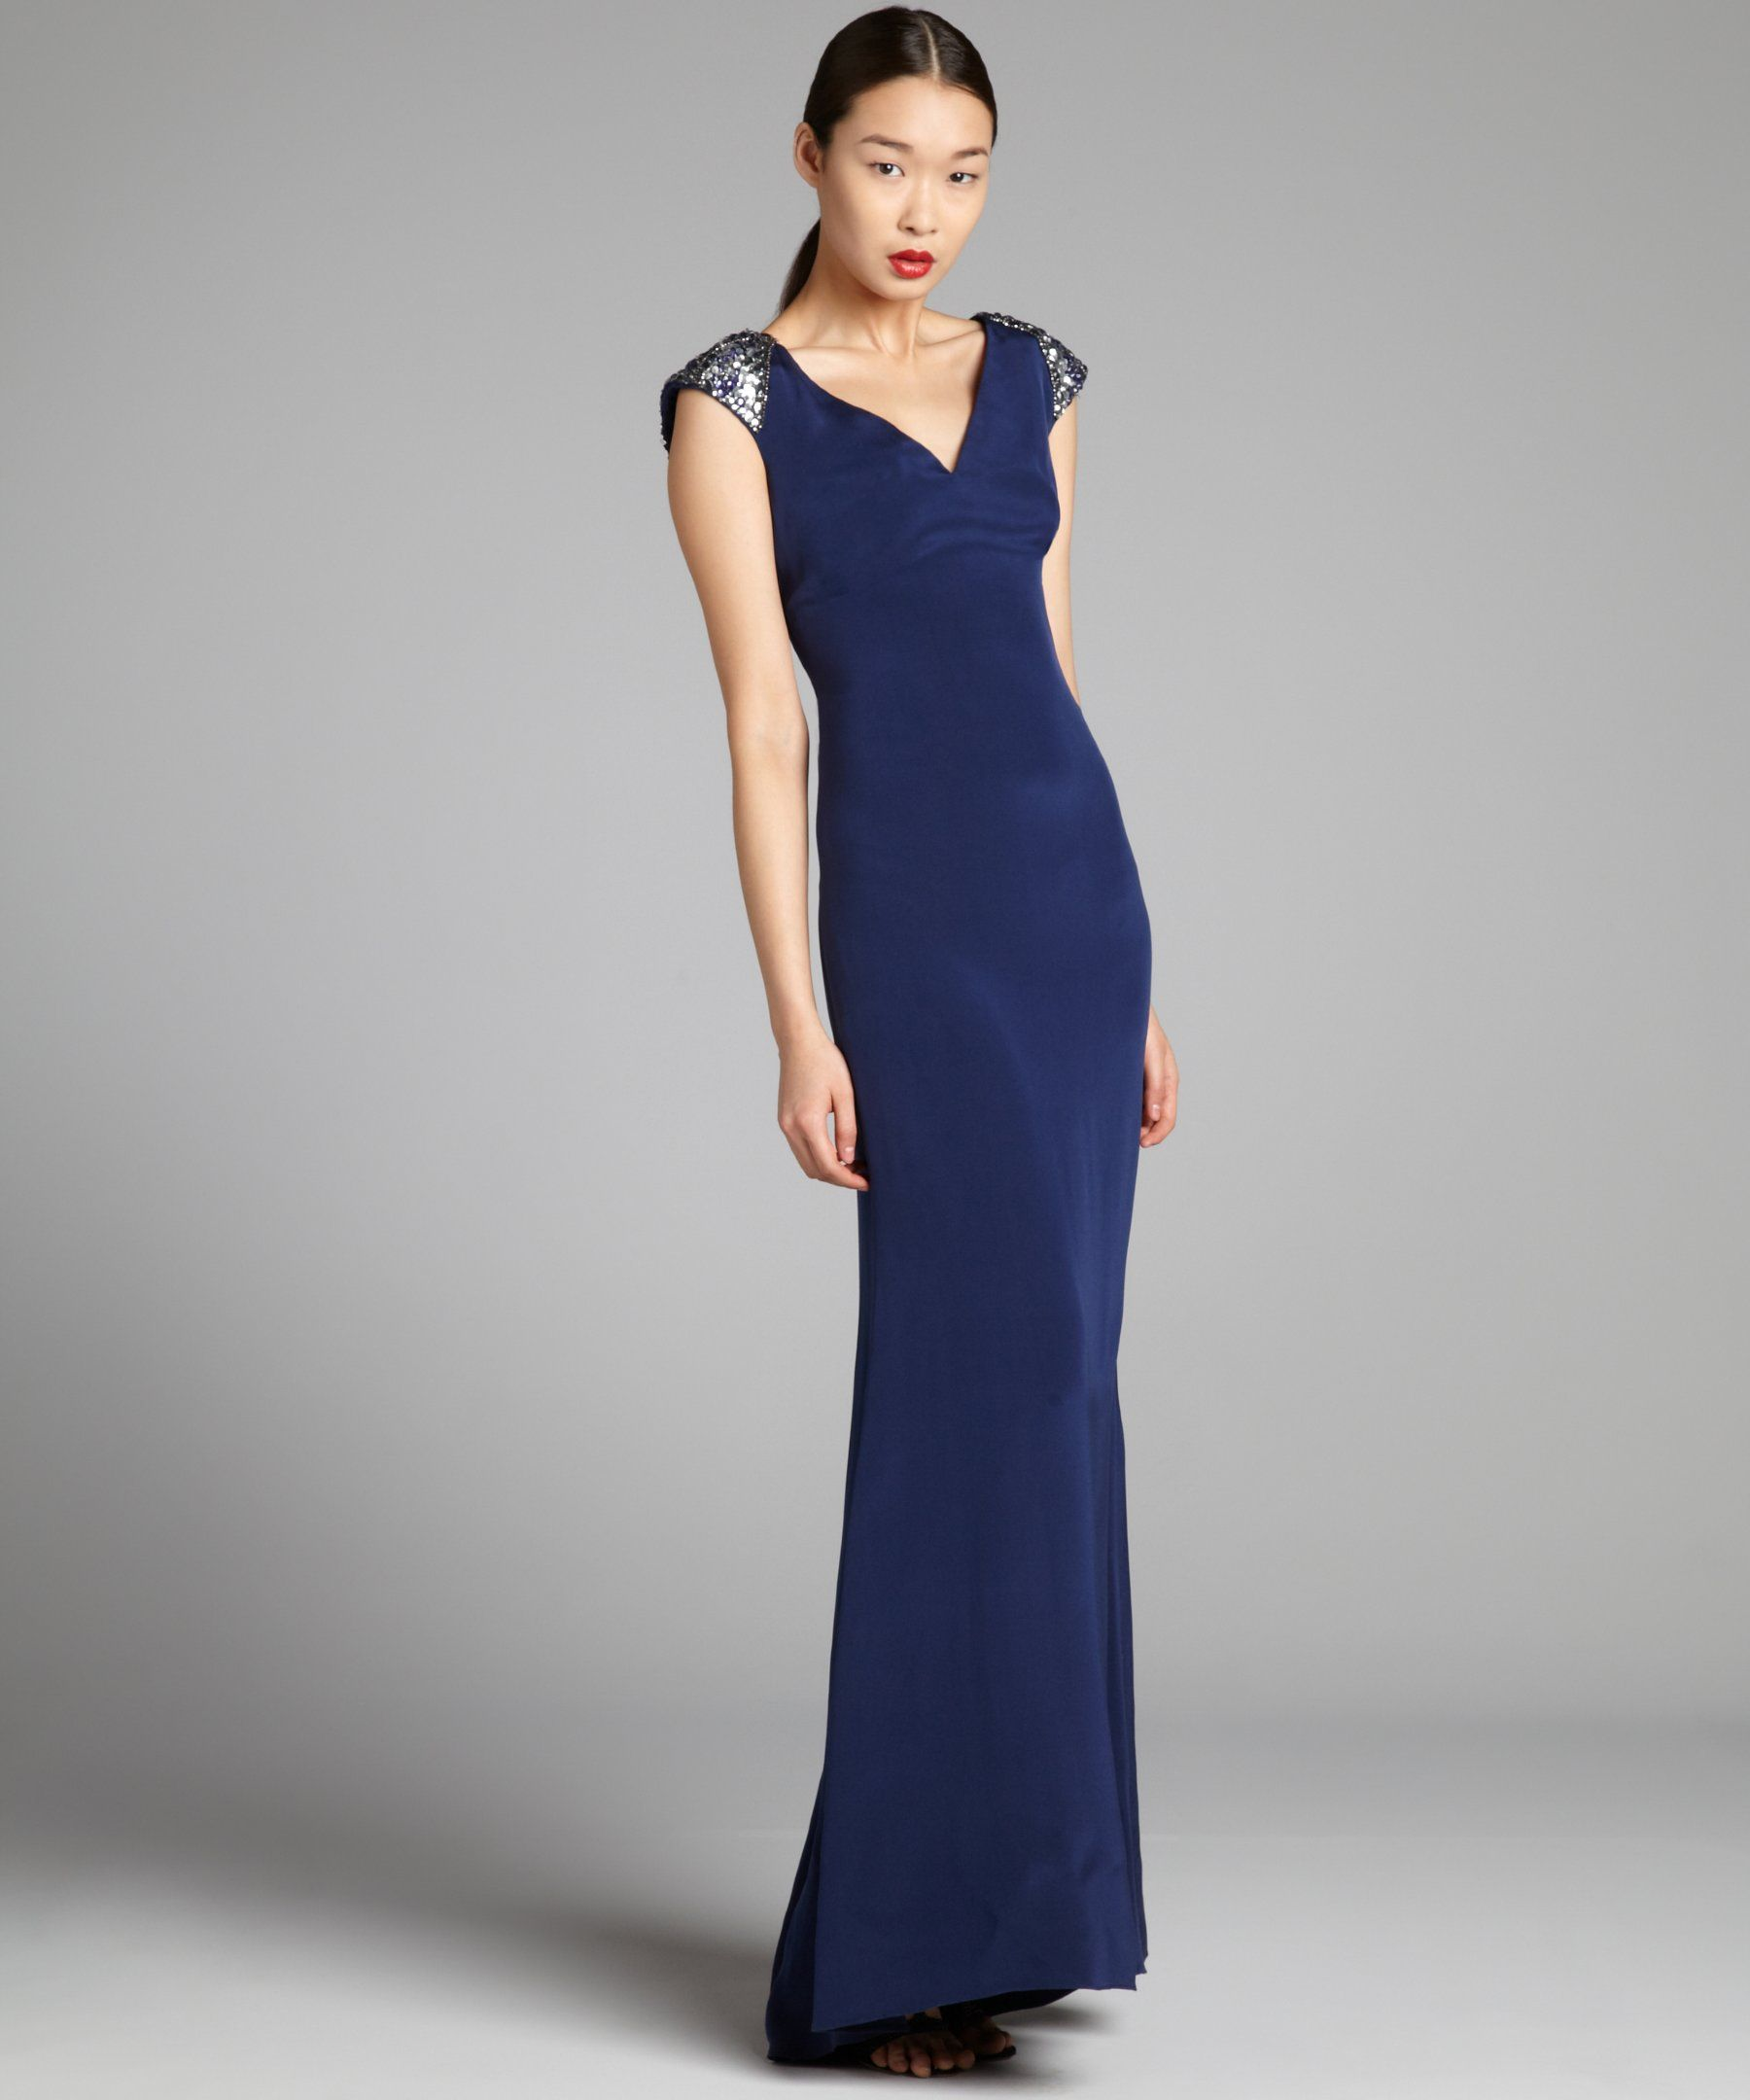 Notte by marchesa navy silk jewel embellished cap sleeve gown